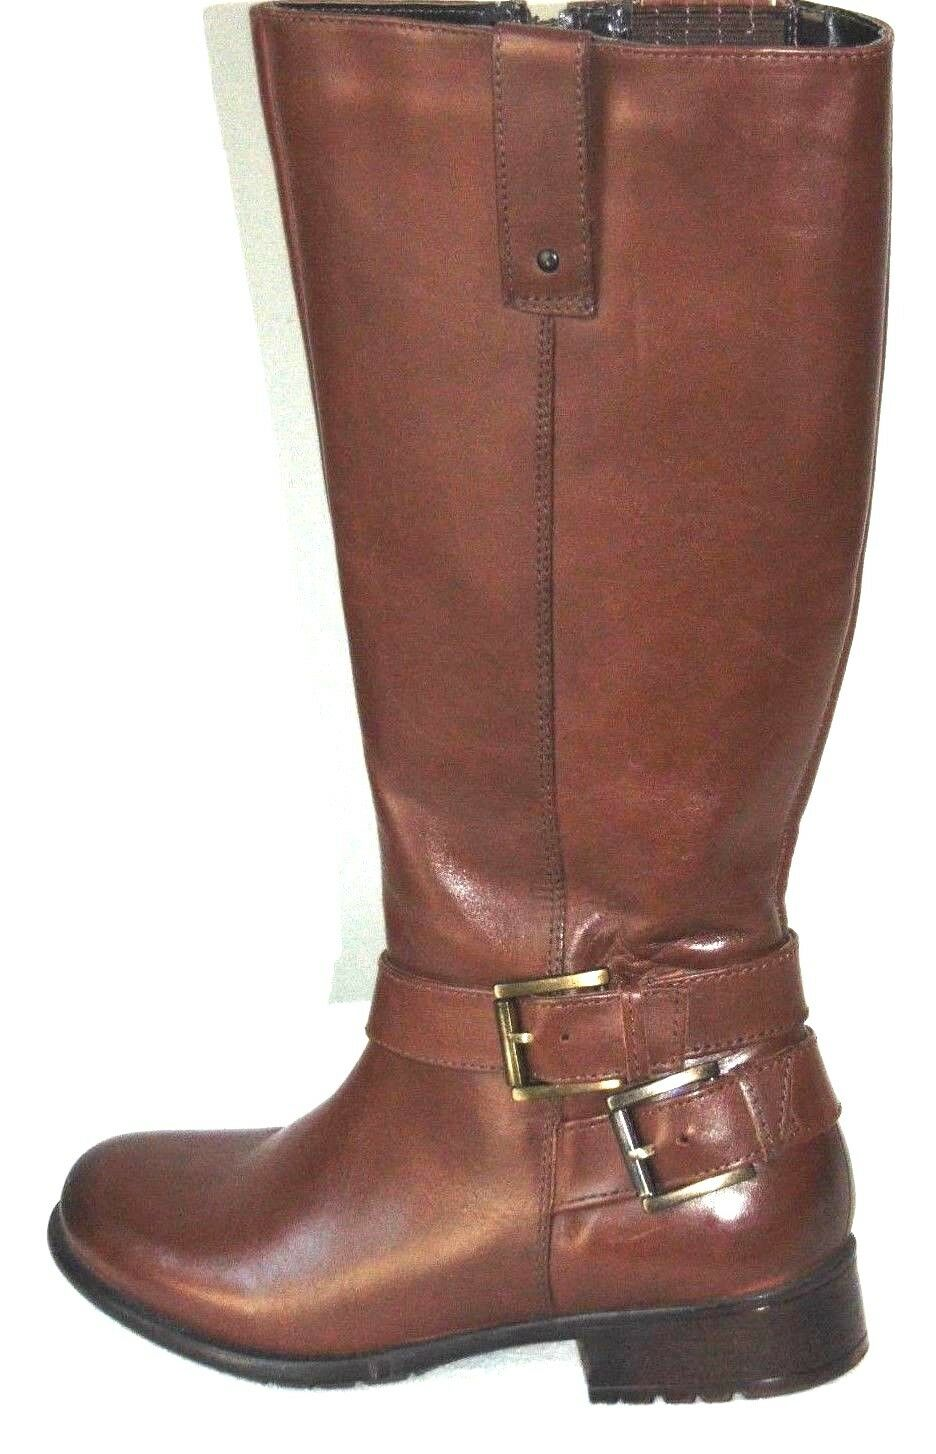 190 Clarks Plaza Steer Girl Knee High Boot  Braun  Größe: US/5.5